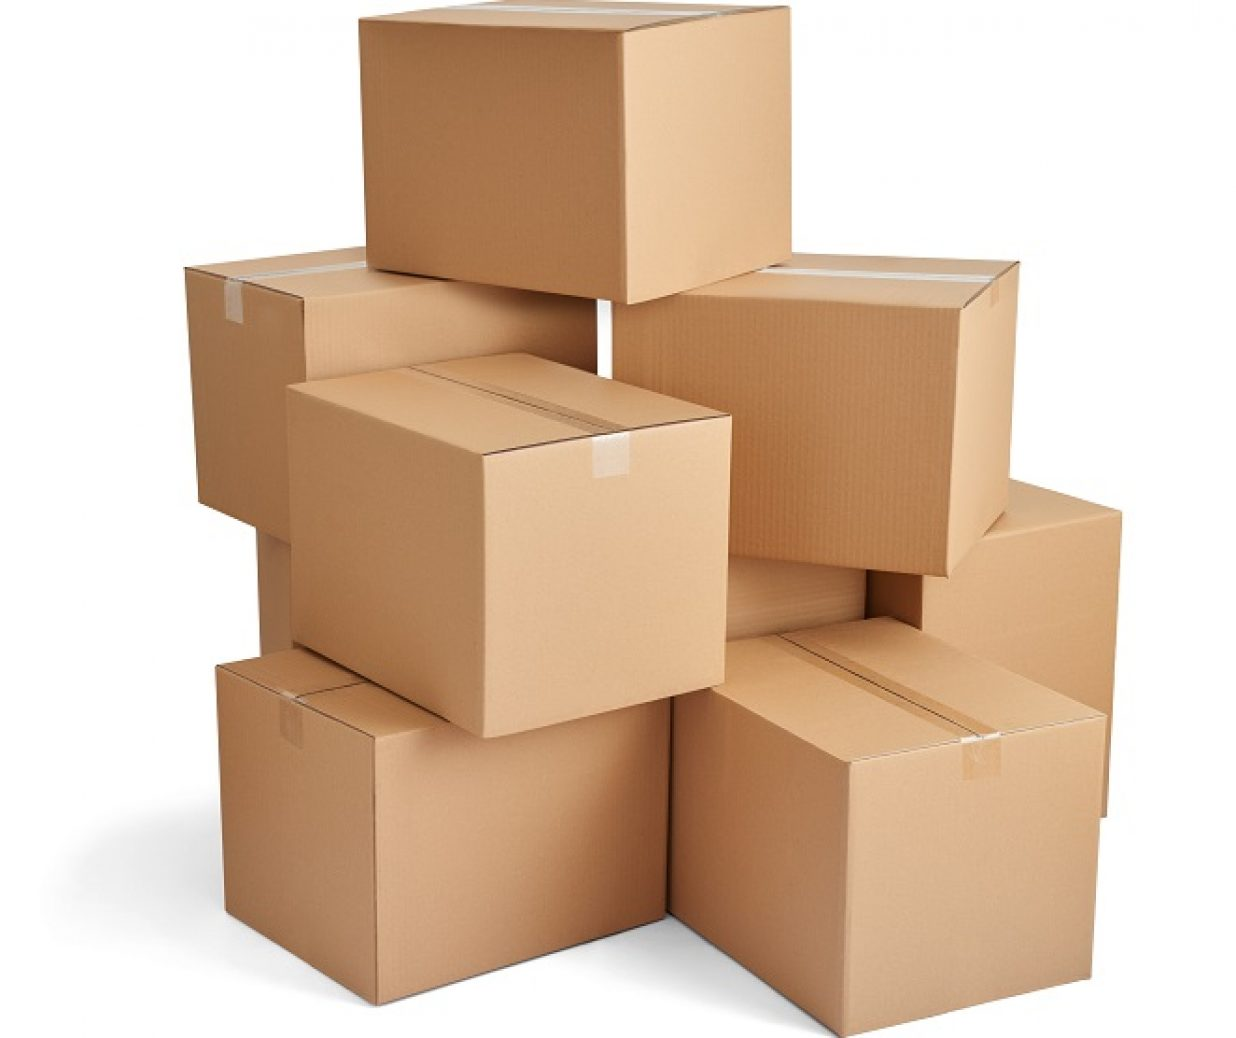 boxes, moving boxes, cardboard boxes, moving supplies, buy boxes, where to buy moving boxes